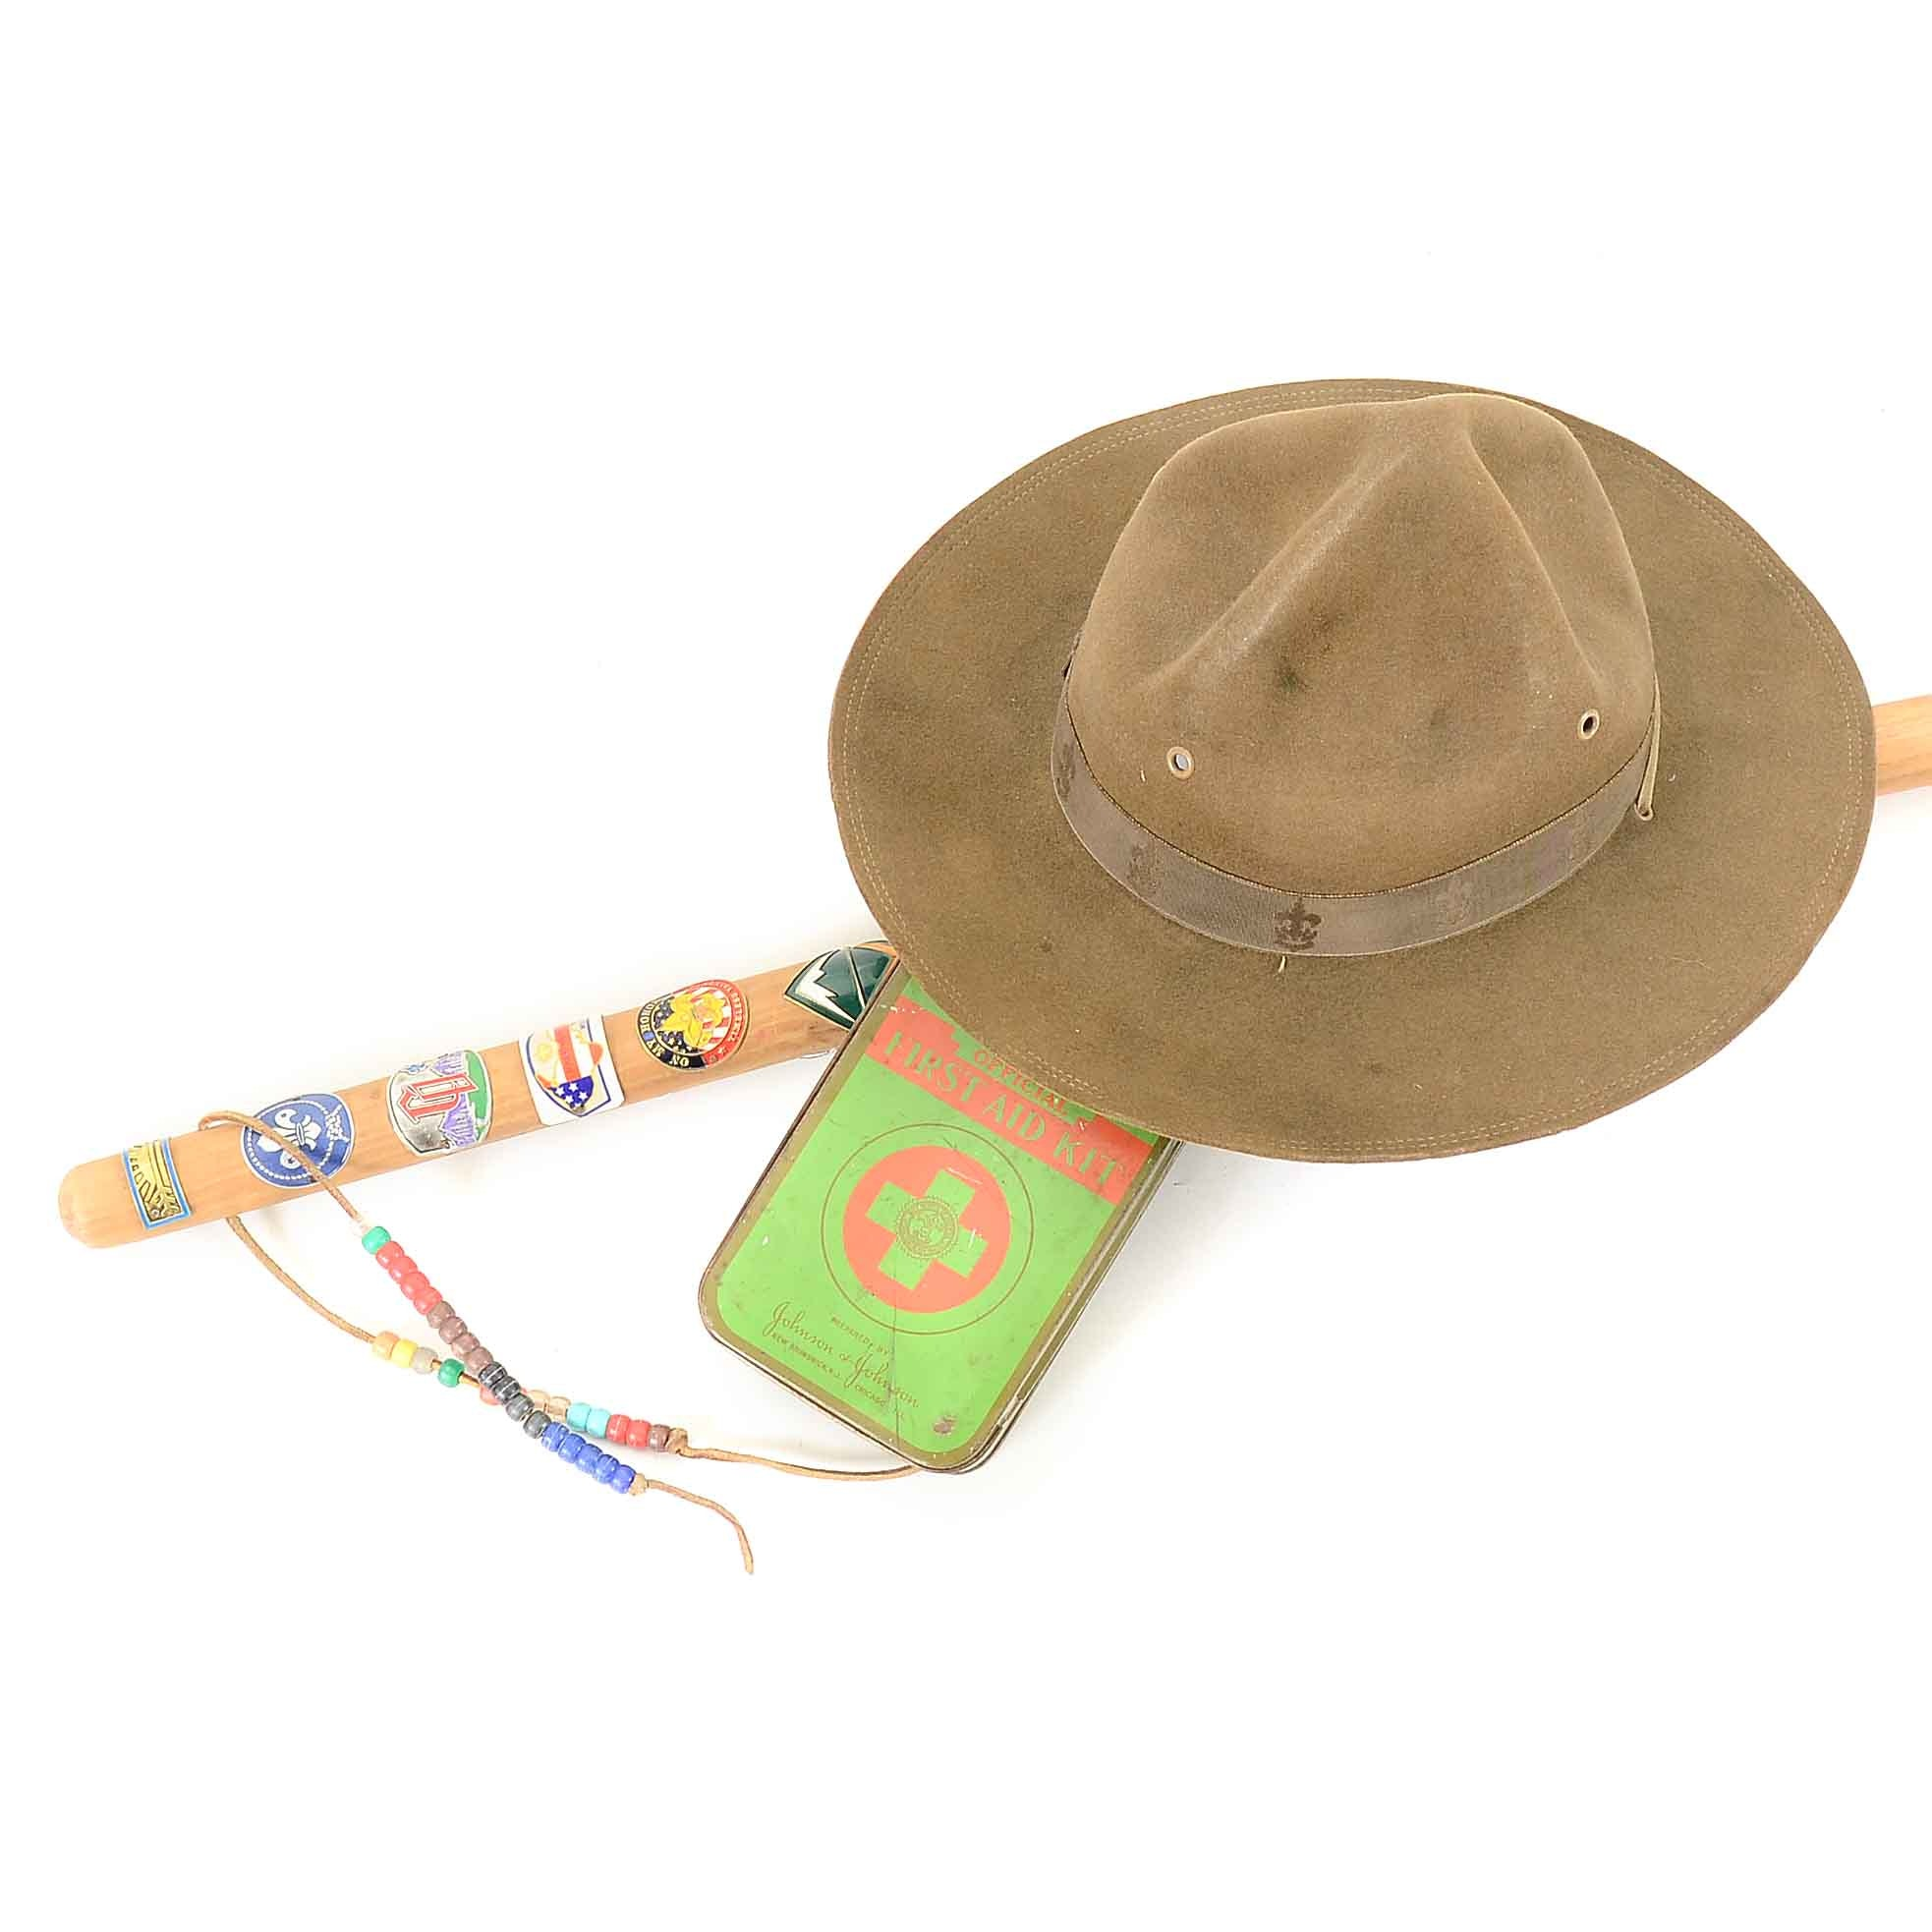 Boy Scouts of America Hat, Walking Stick and First Aid Tin